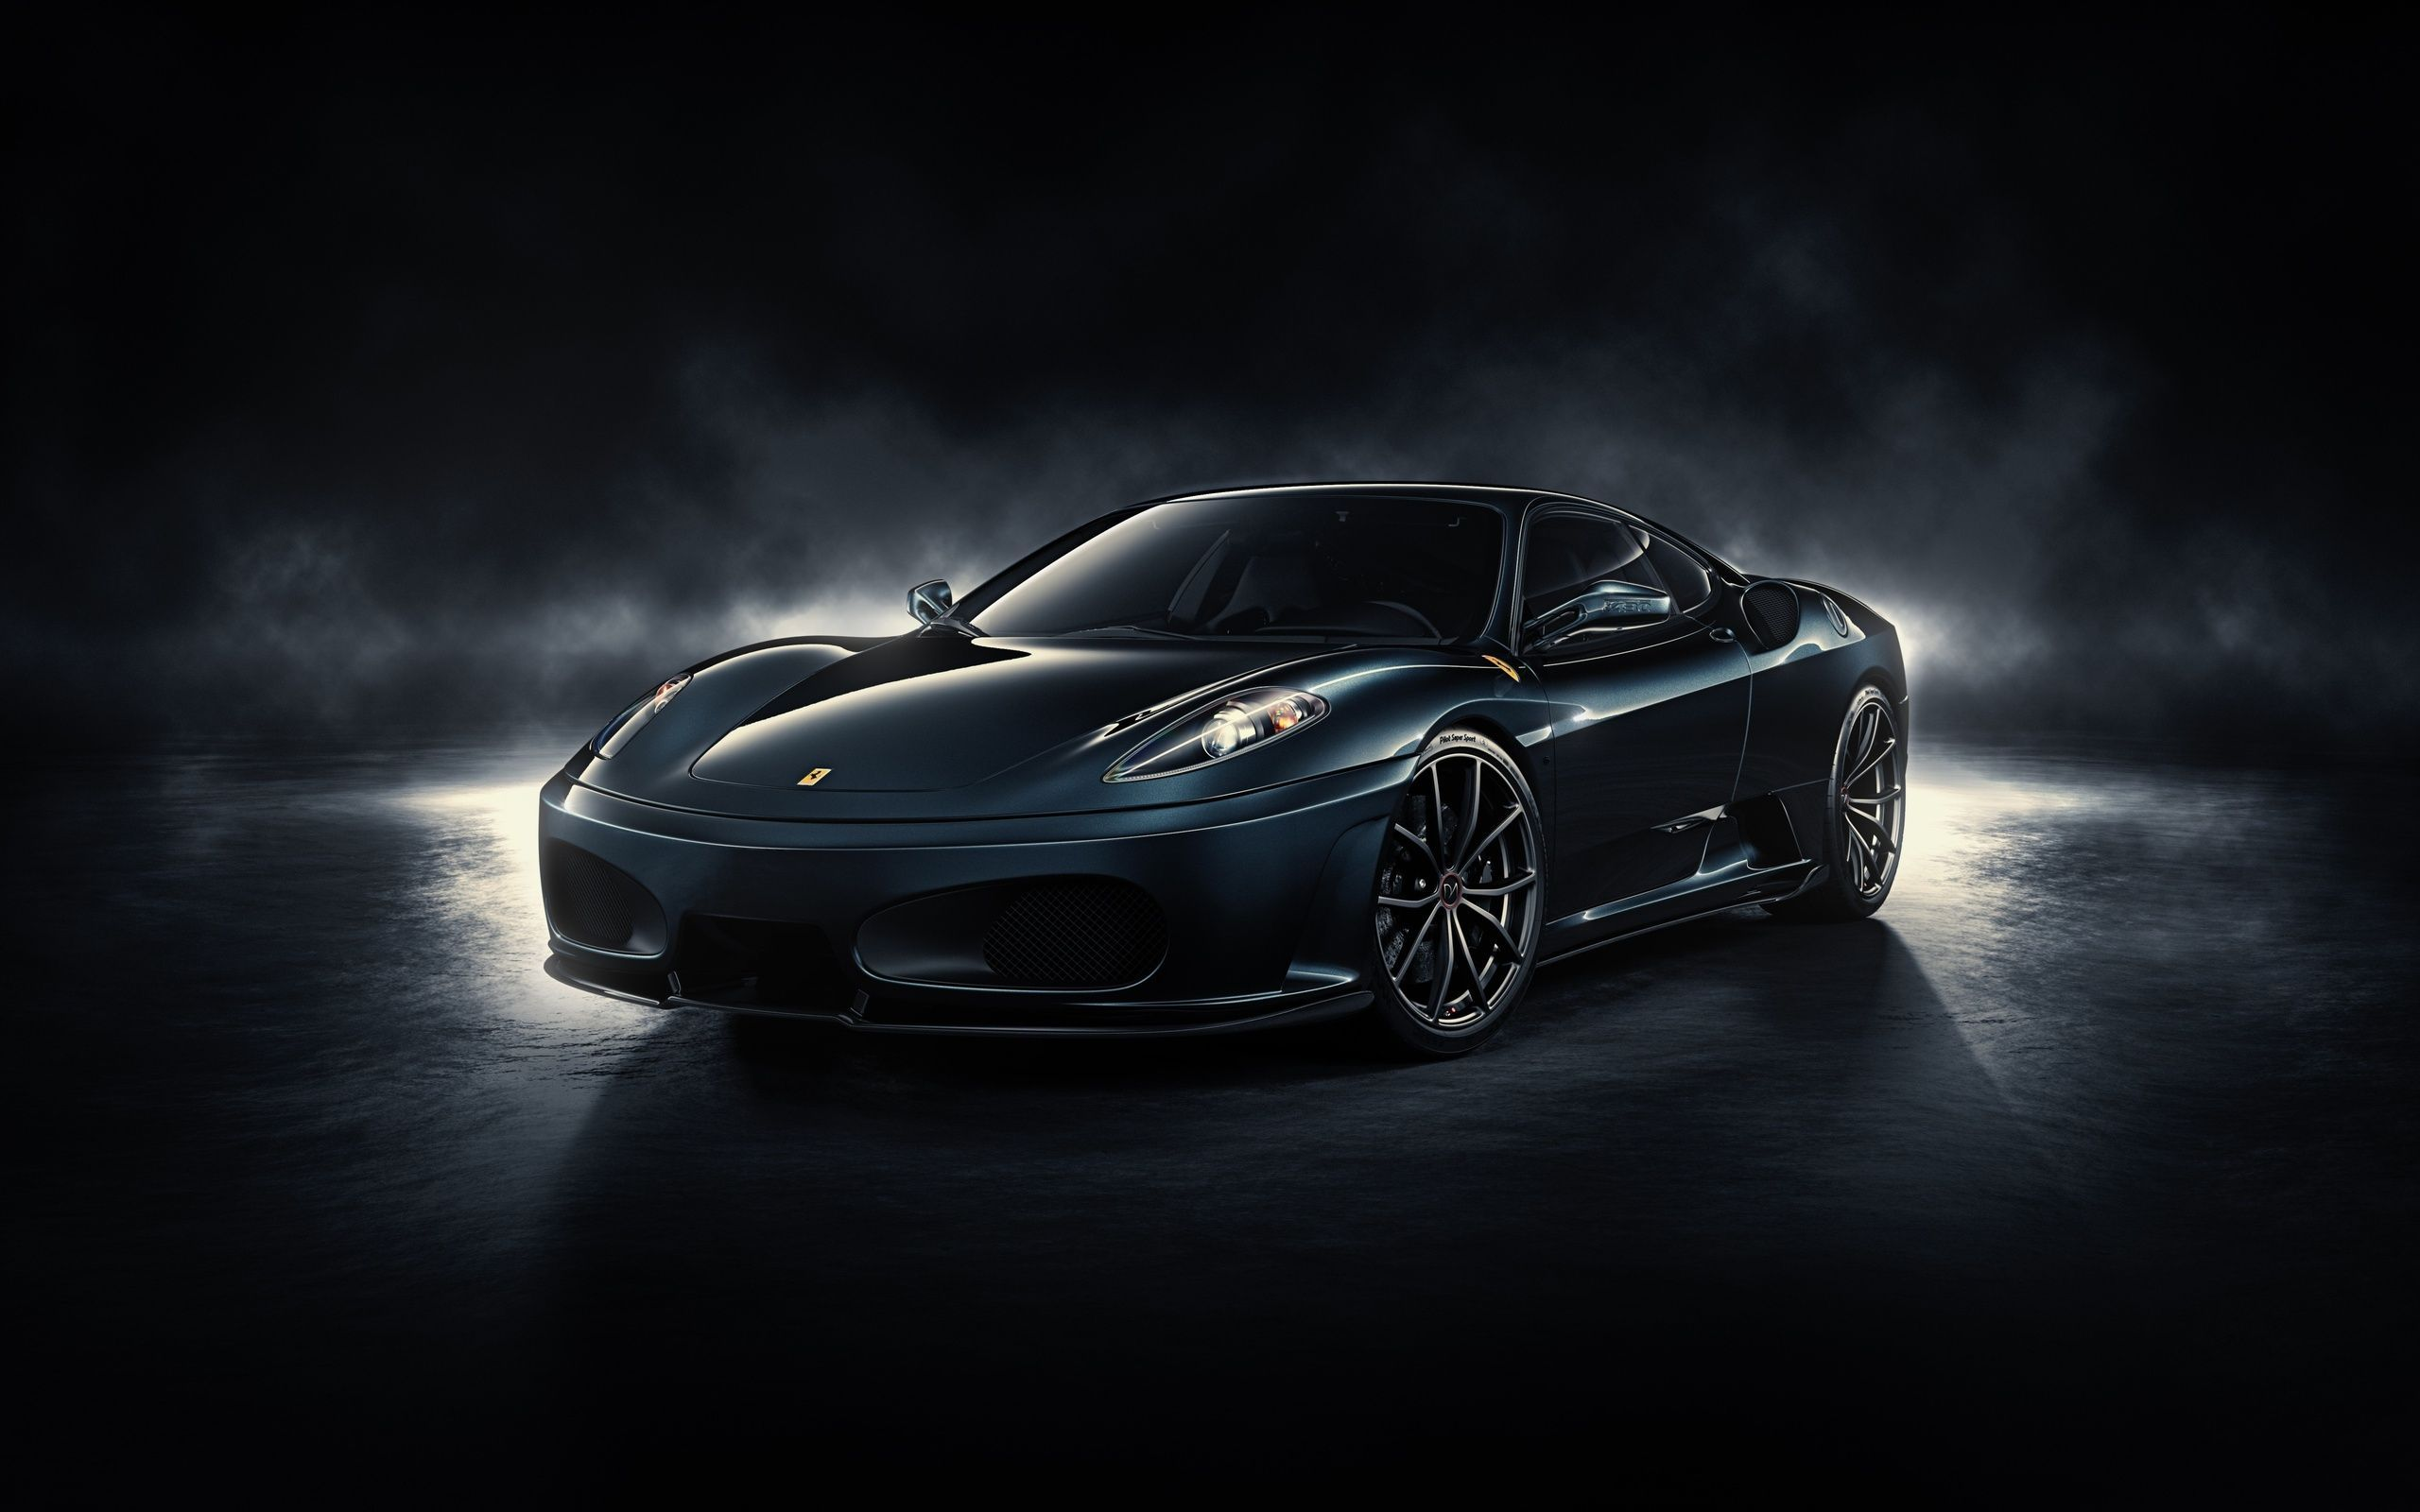 Cool Car Wallpaper With Black Ferrari In Dark Background - Cool cars photos download